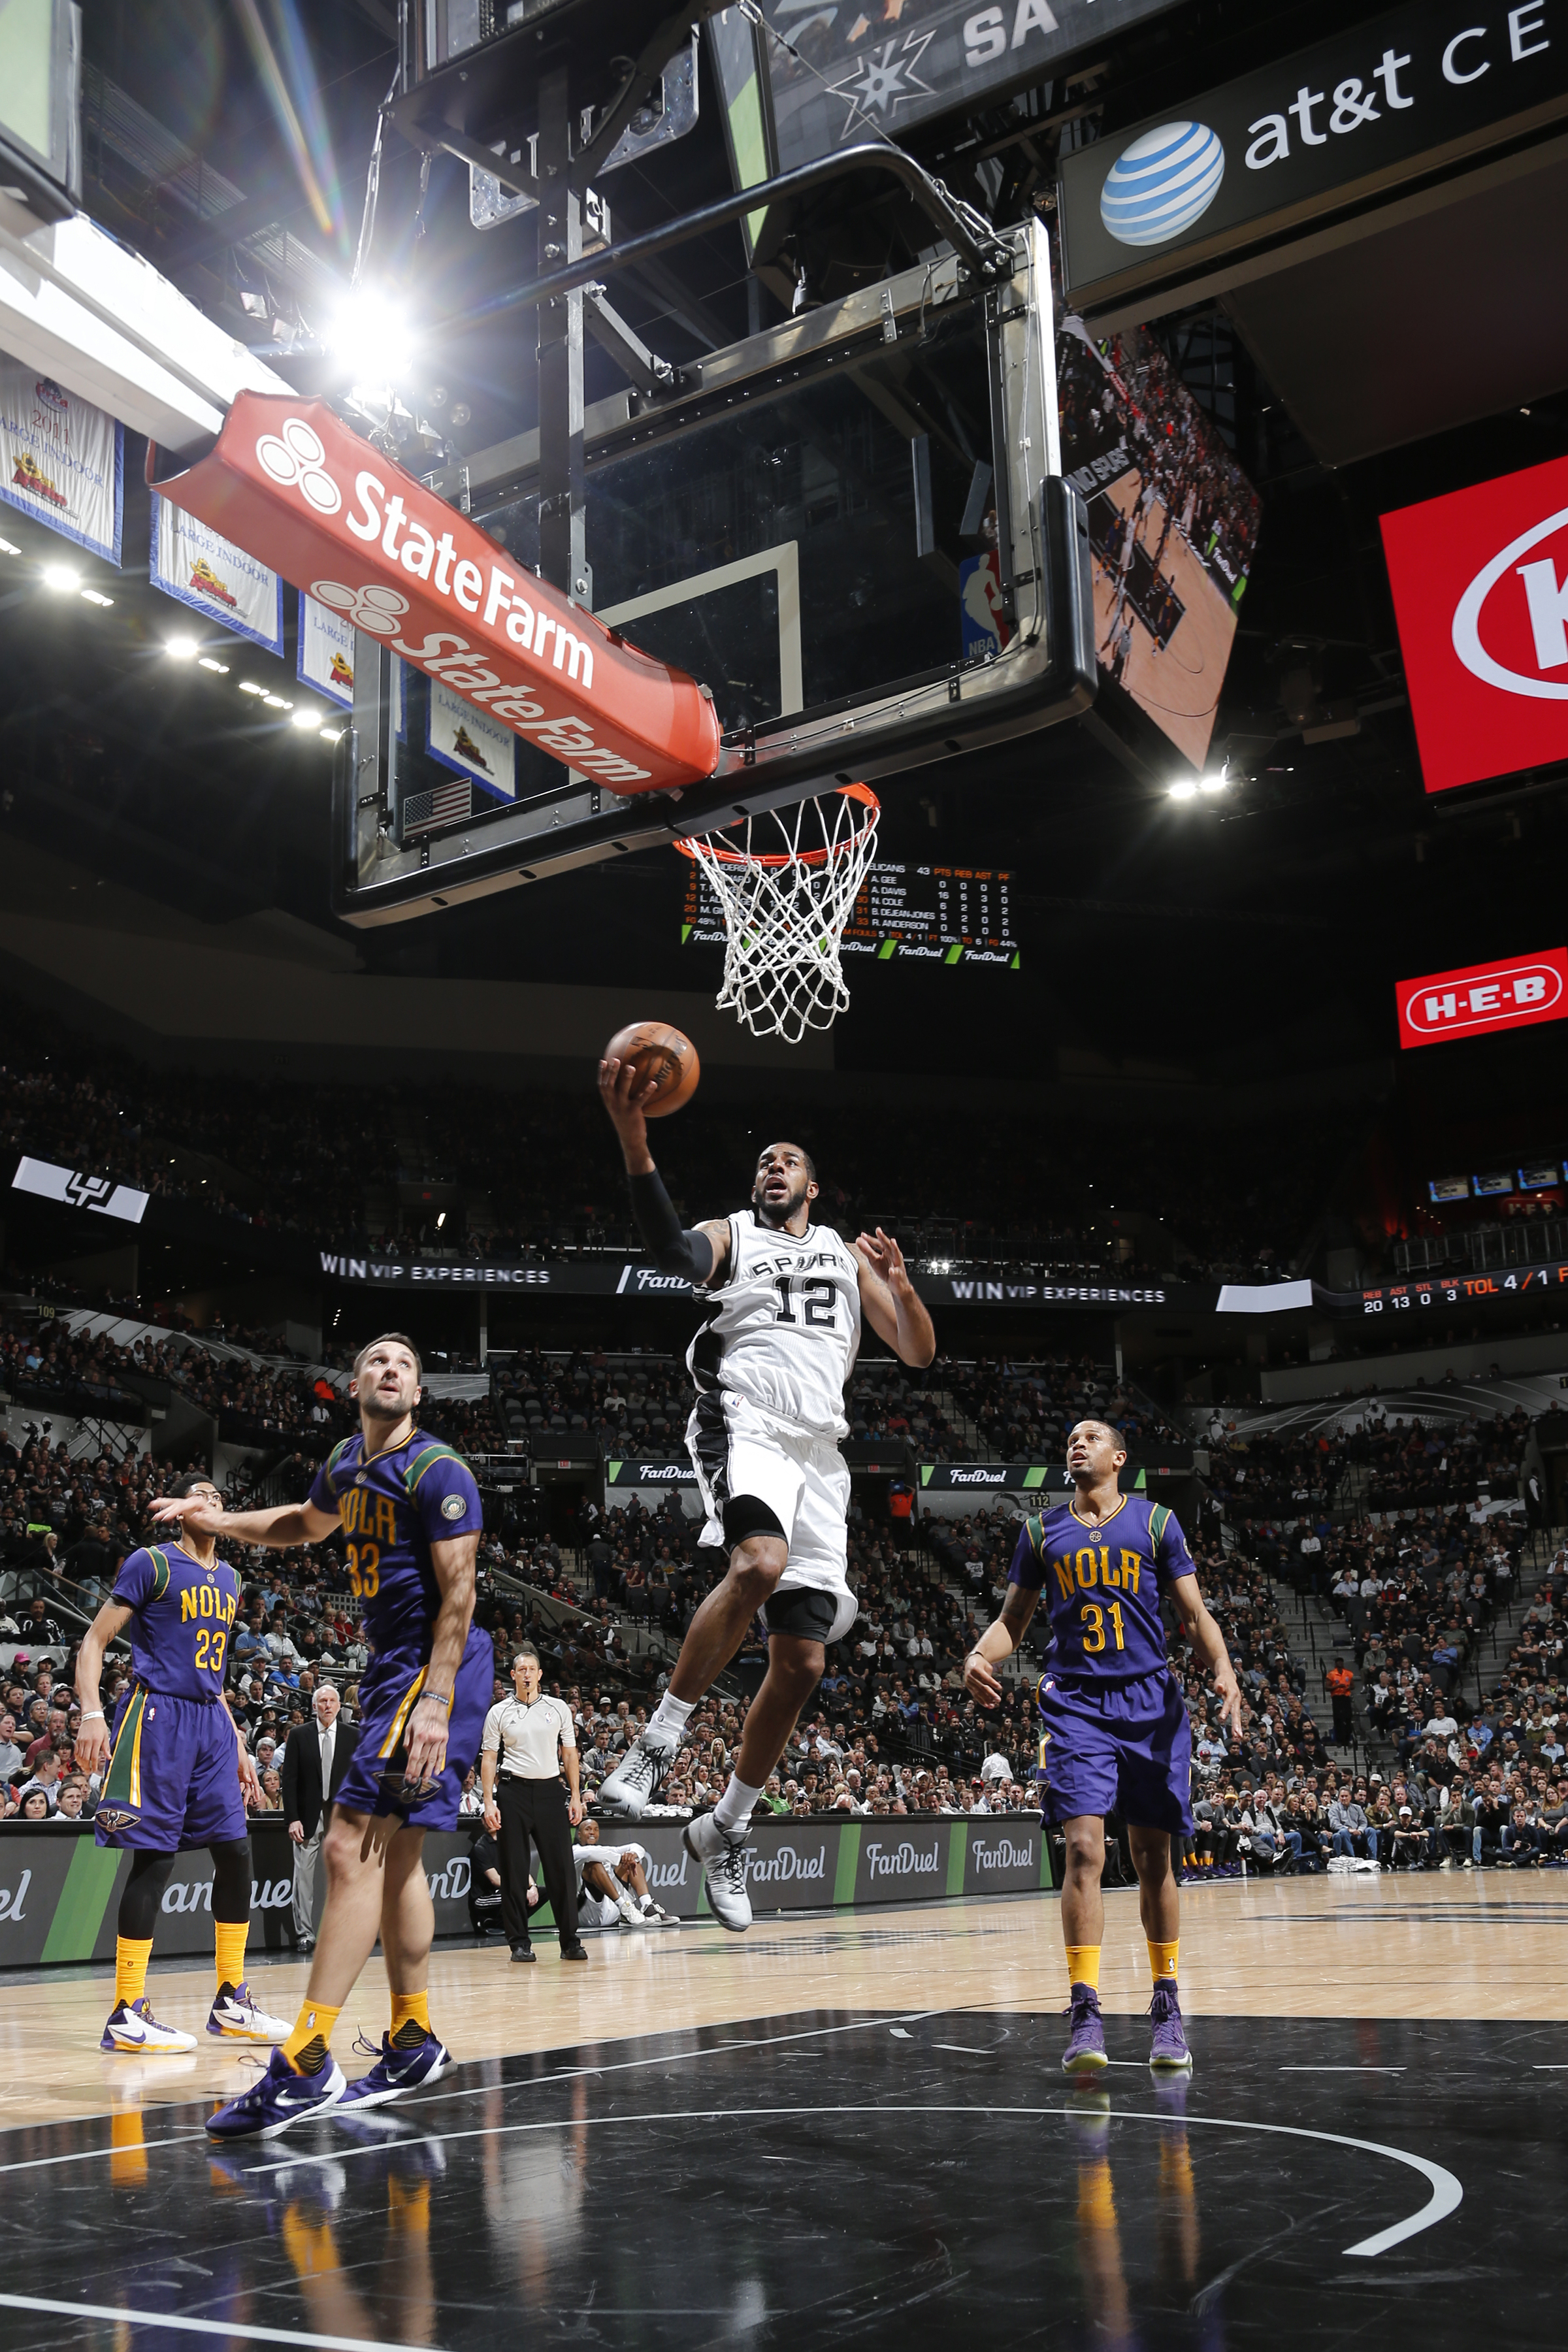 SAN ANTONIO, TX - FEBRUARY 3:  LaMarcus Aldridge #12 of the San Antonio Spurs shoots a lay up against the New Orleans Pelicans on February 3, 2016 at the AT&T Center in San Antonio, Texas.